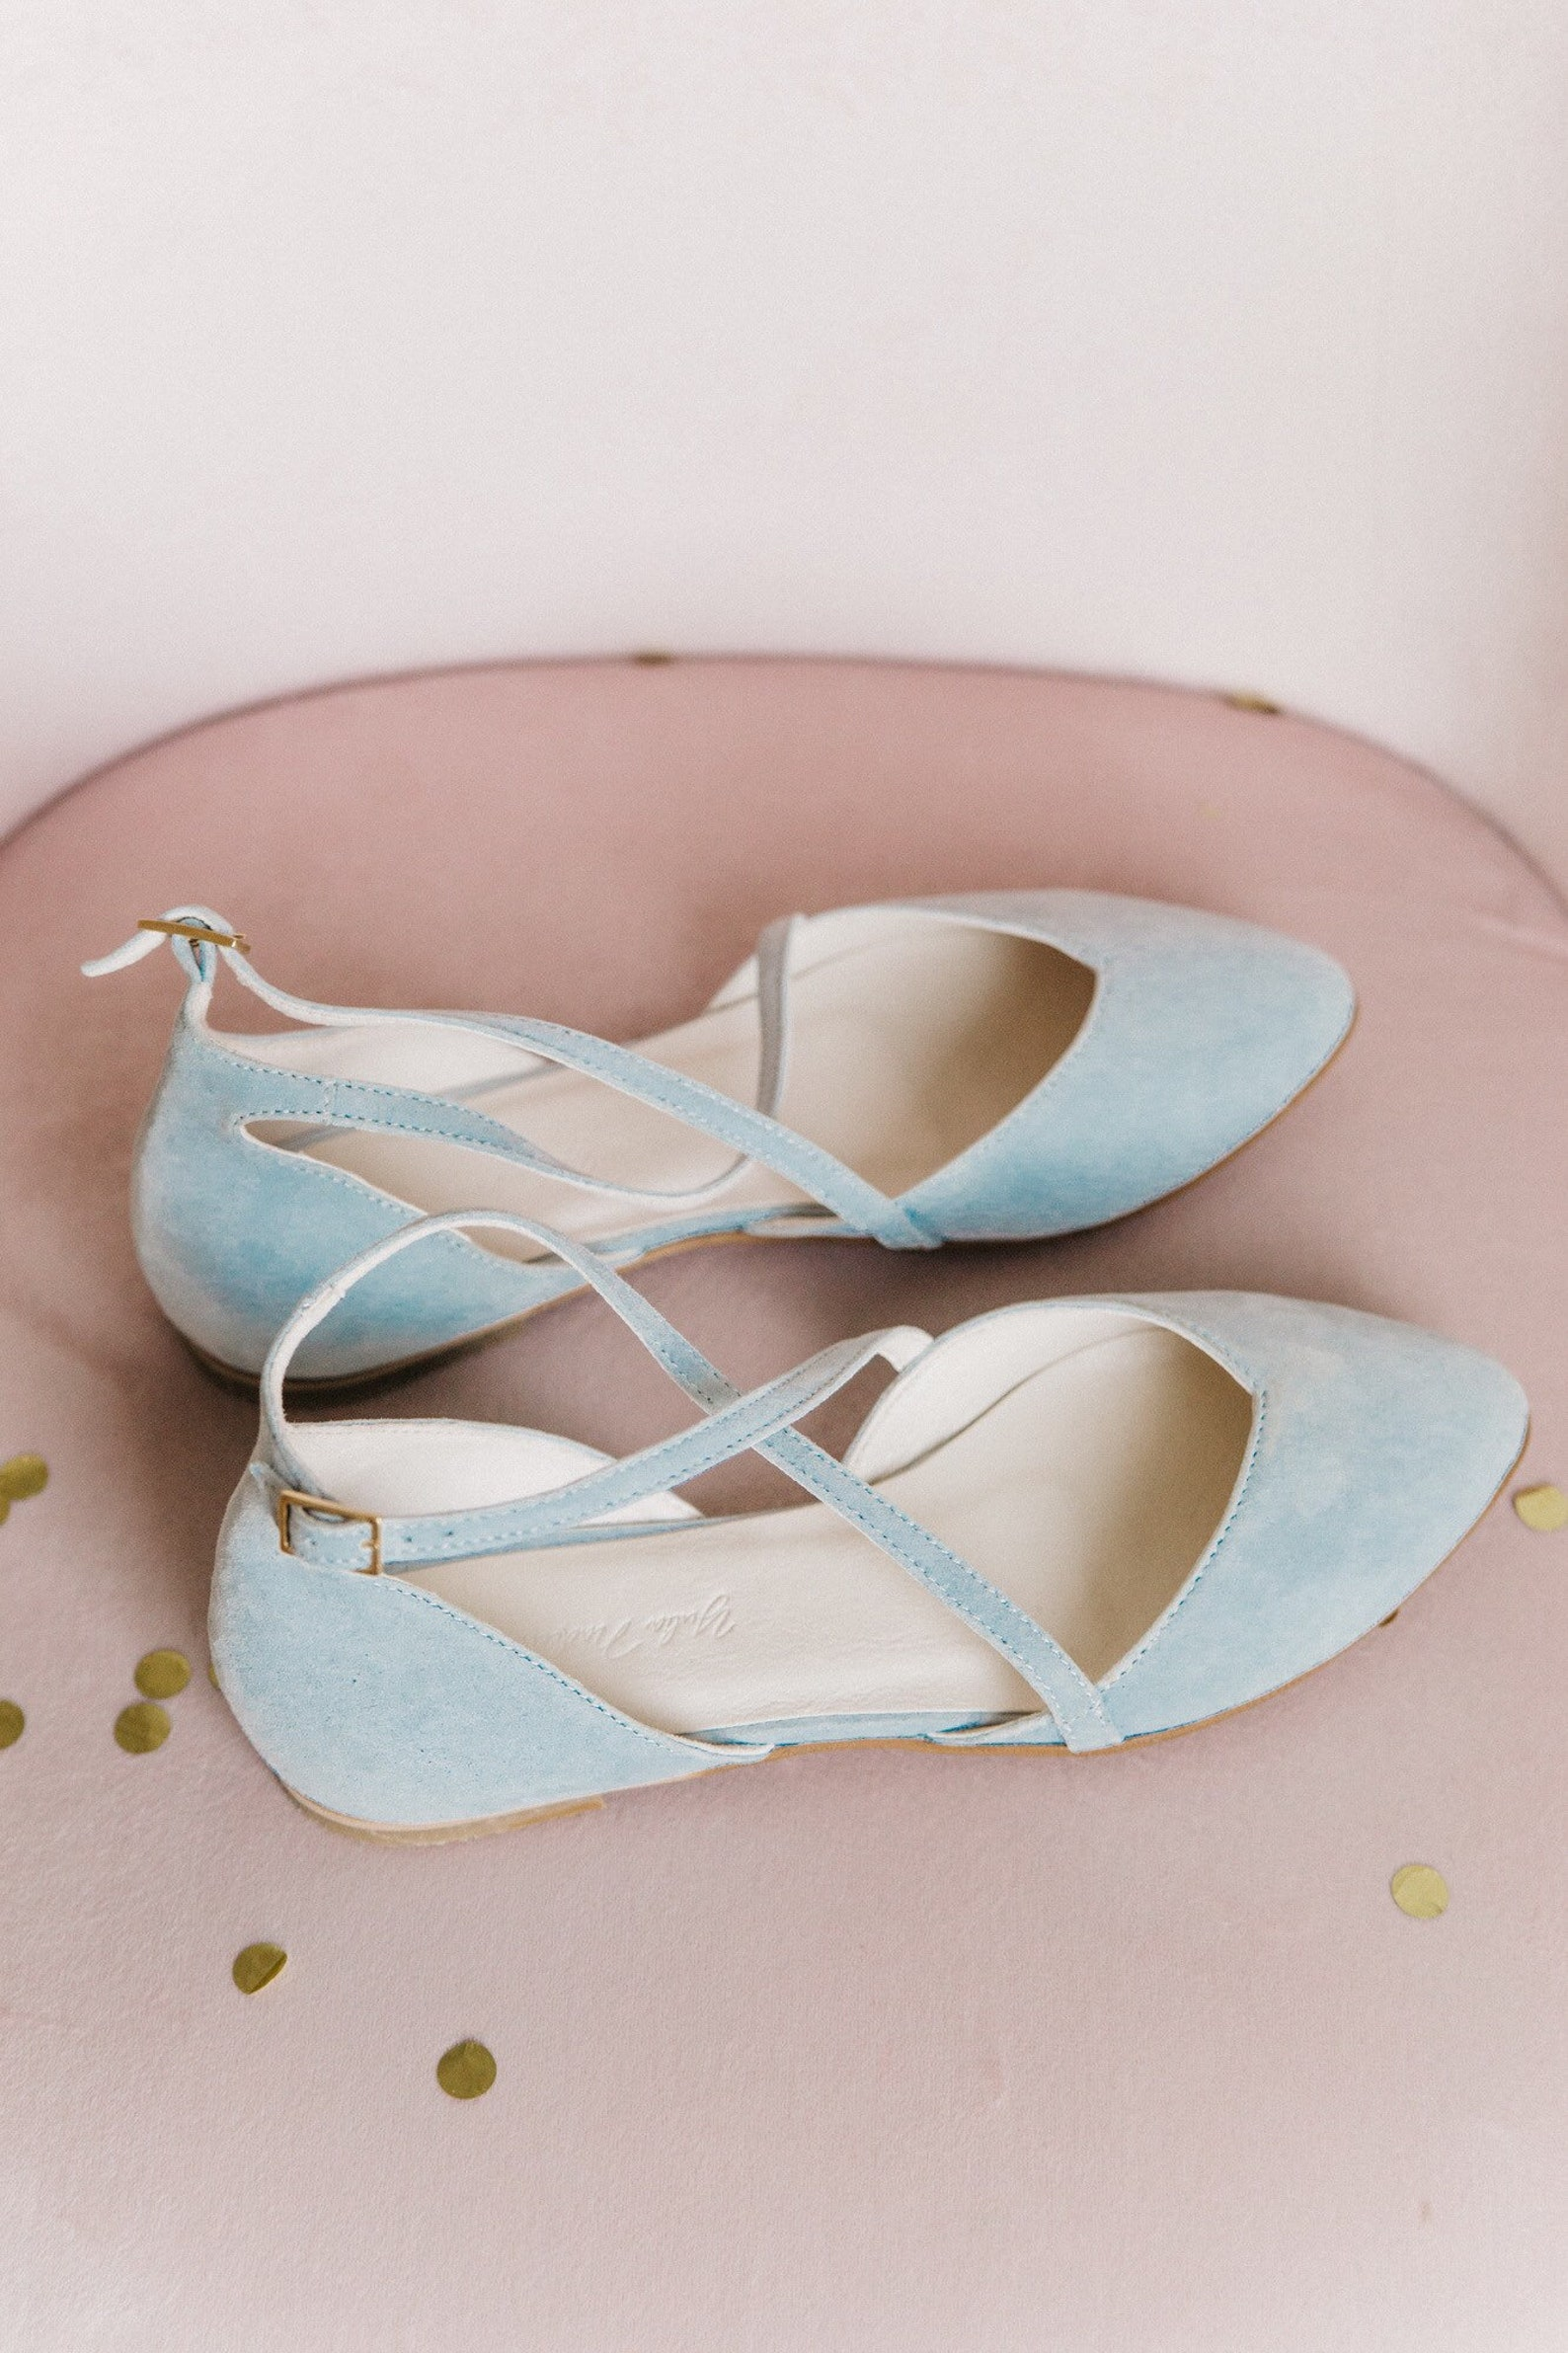 wedding shoes, blue wedding shoes, bridal ballet flats, low wedding shoes, bridal flats, wedding flats, silver flats, ballet fla